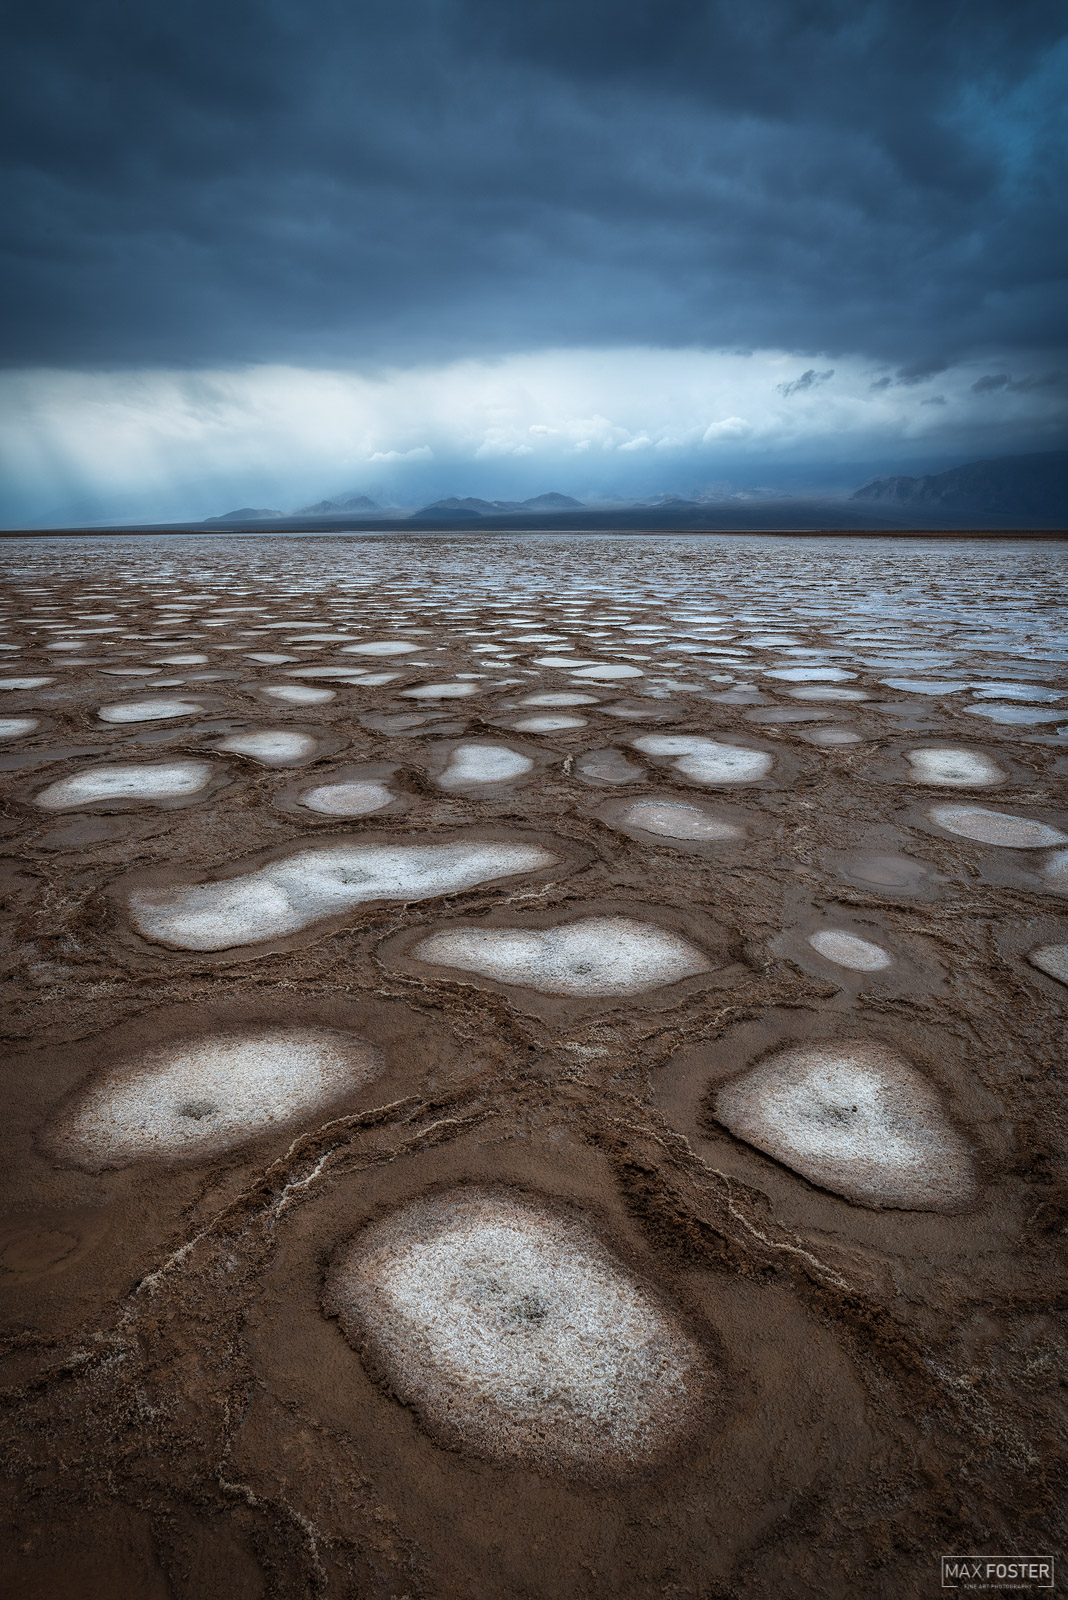 Death Valley National Park, California, Alien Landscape, Salt Pans, Salt Flats, Deserts, evaporation, minerals, photo